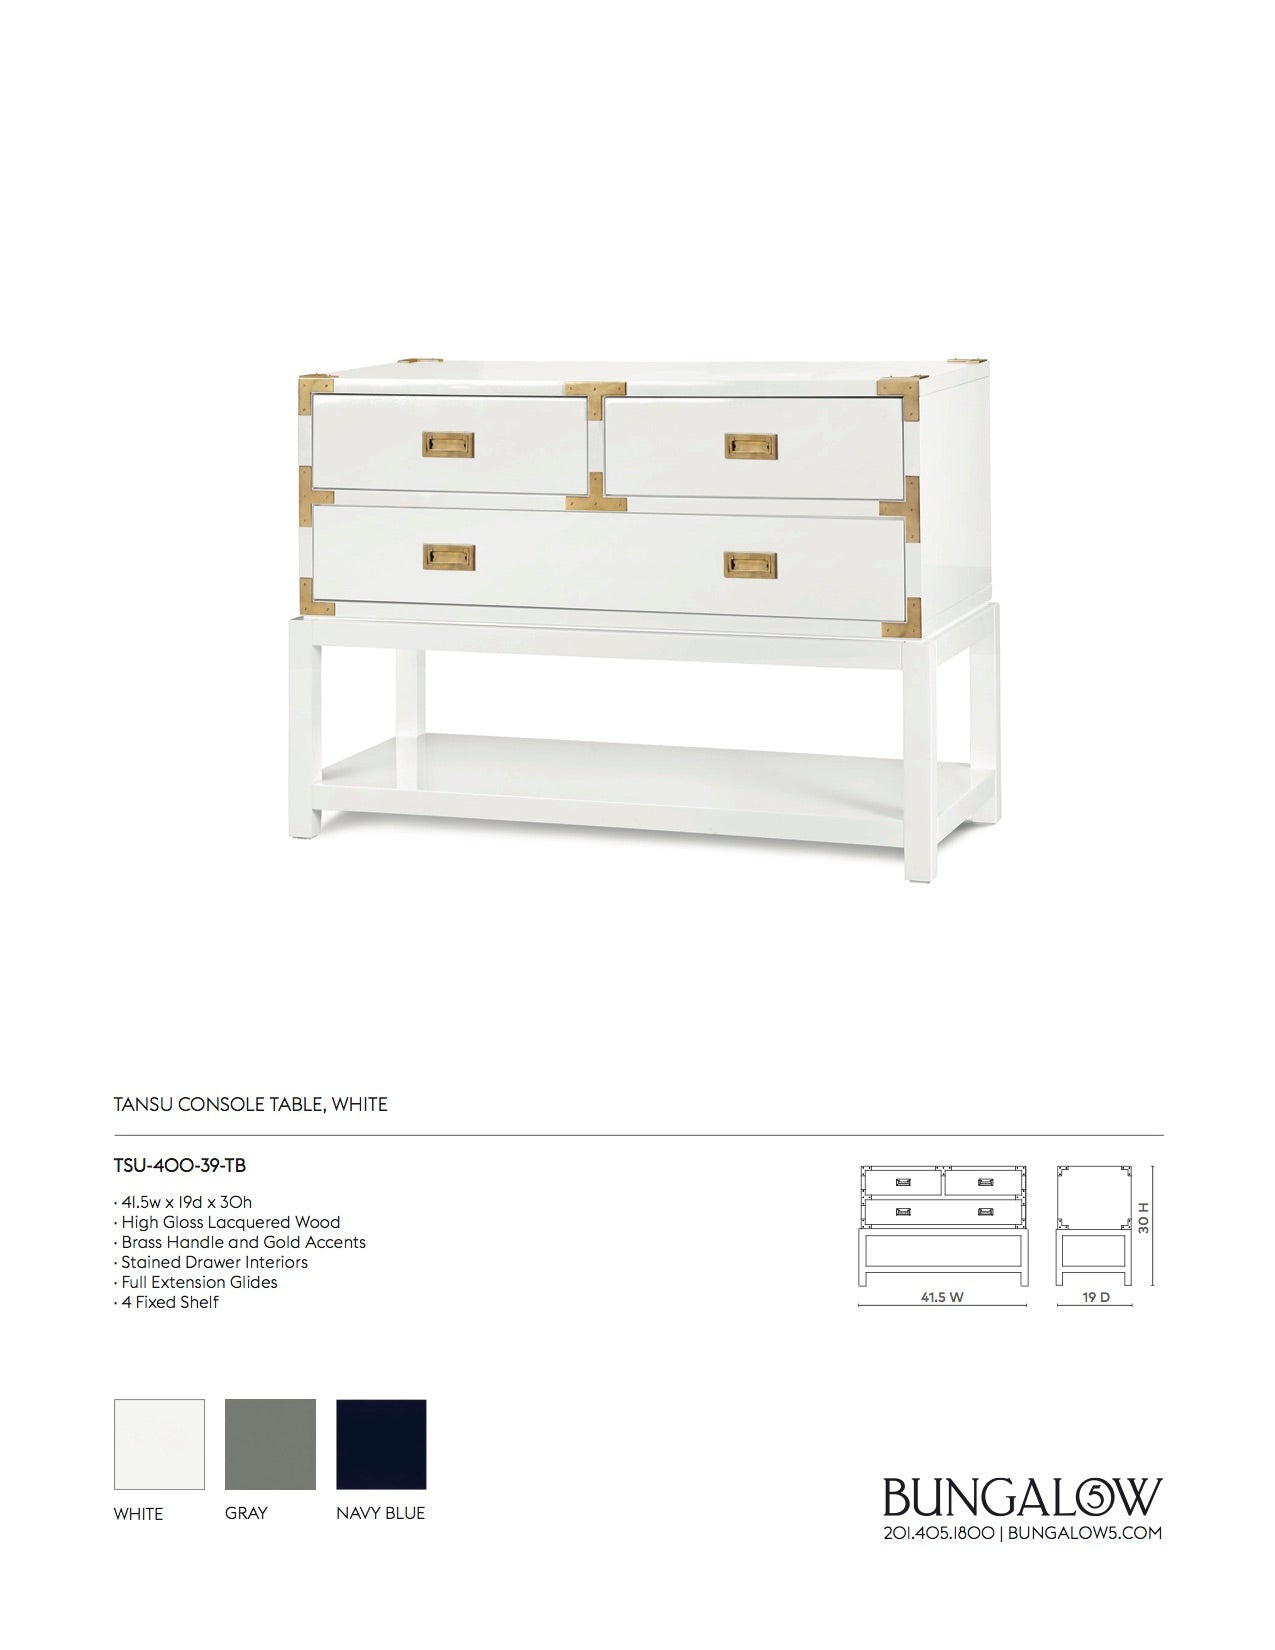 Bungalow 5 Tansu Console Table White Tearsheet